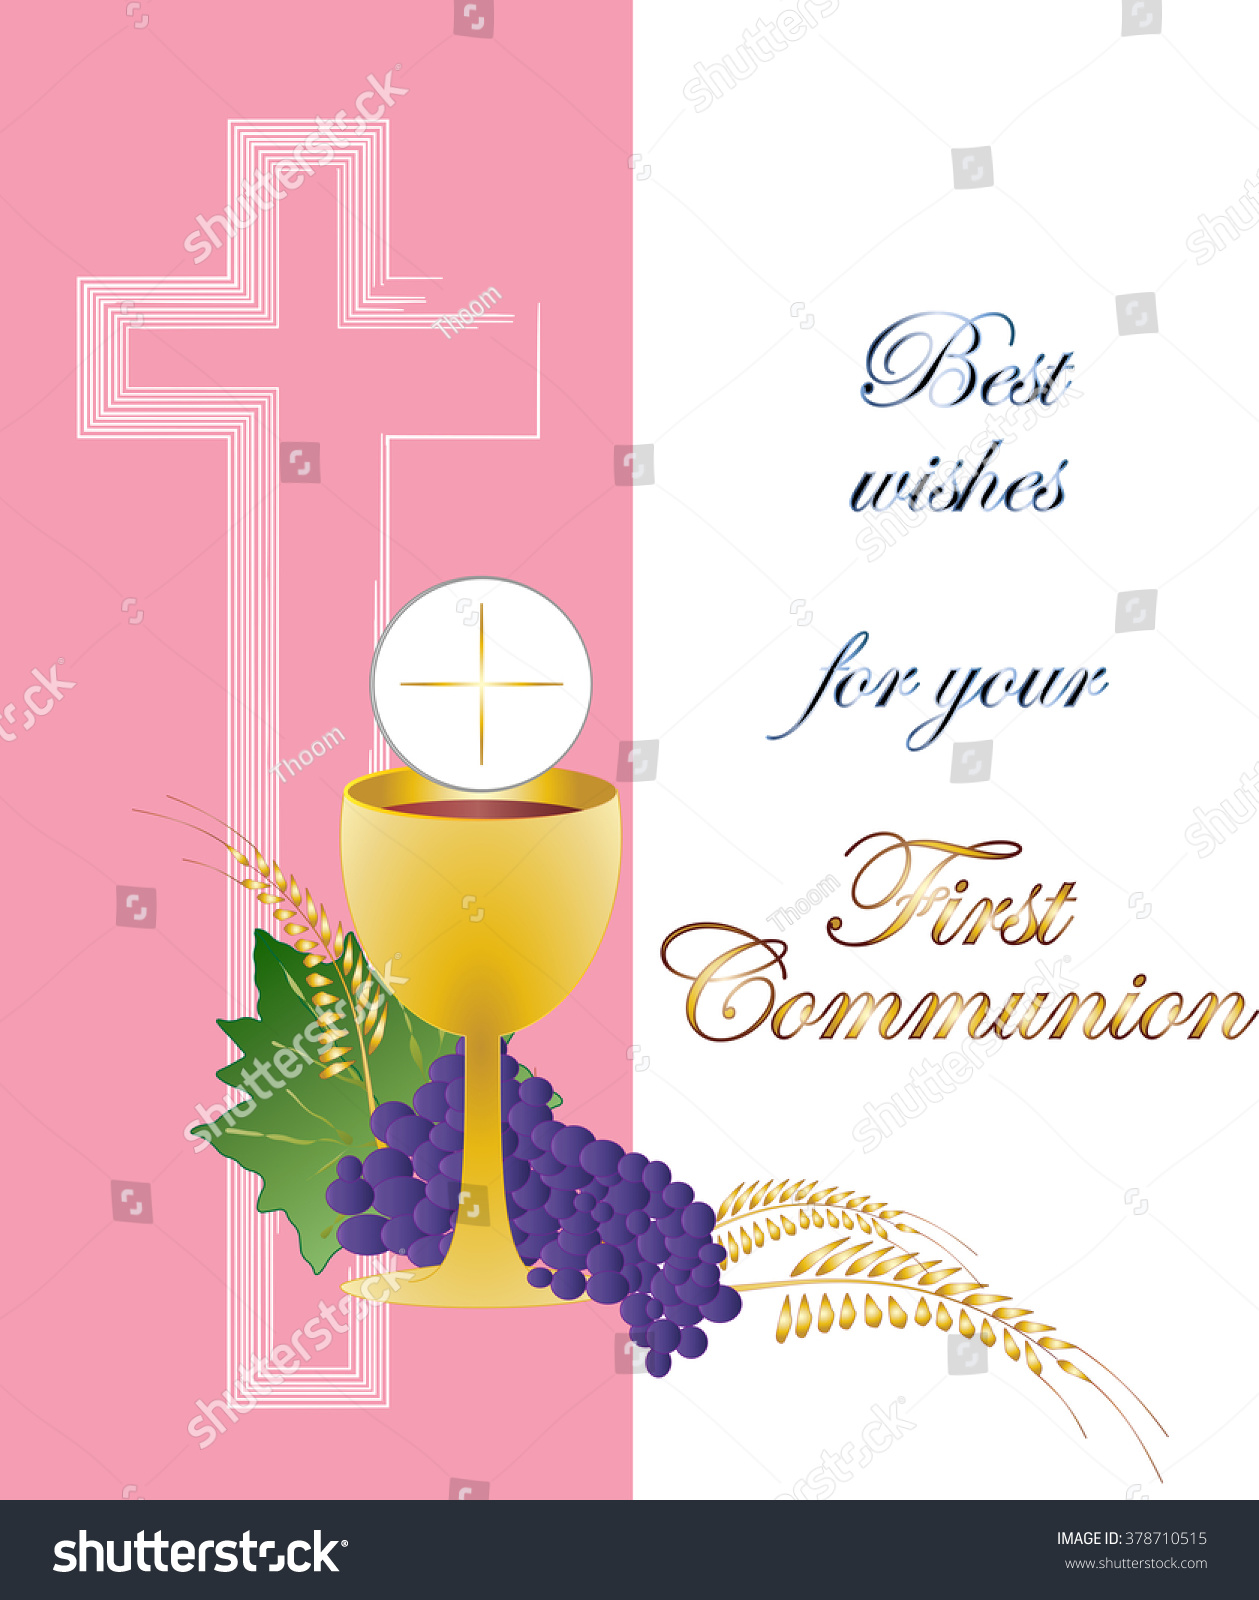 Eucharist symbol of bread and wine chalice and host with wheat ears wreath and grapes with a cross First communion illustration